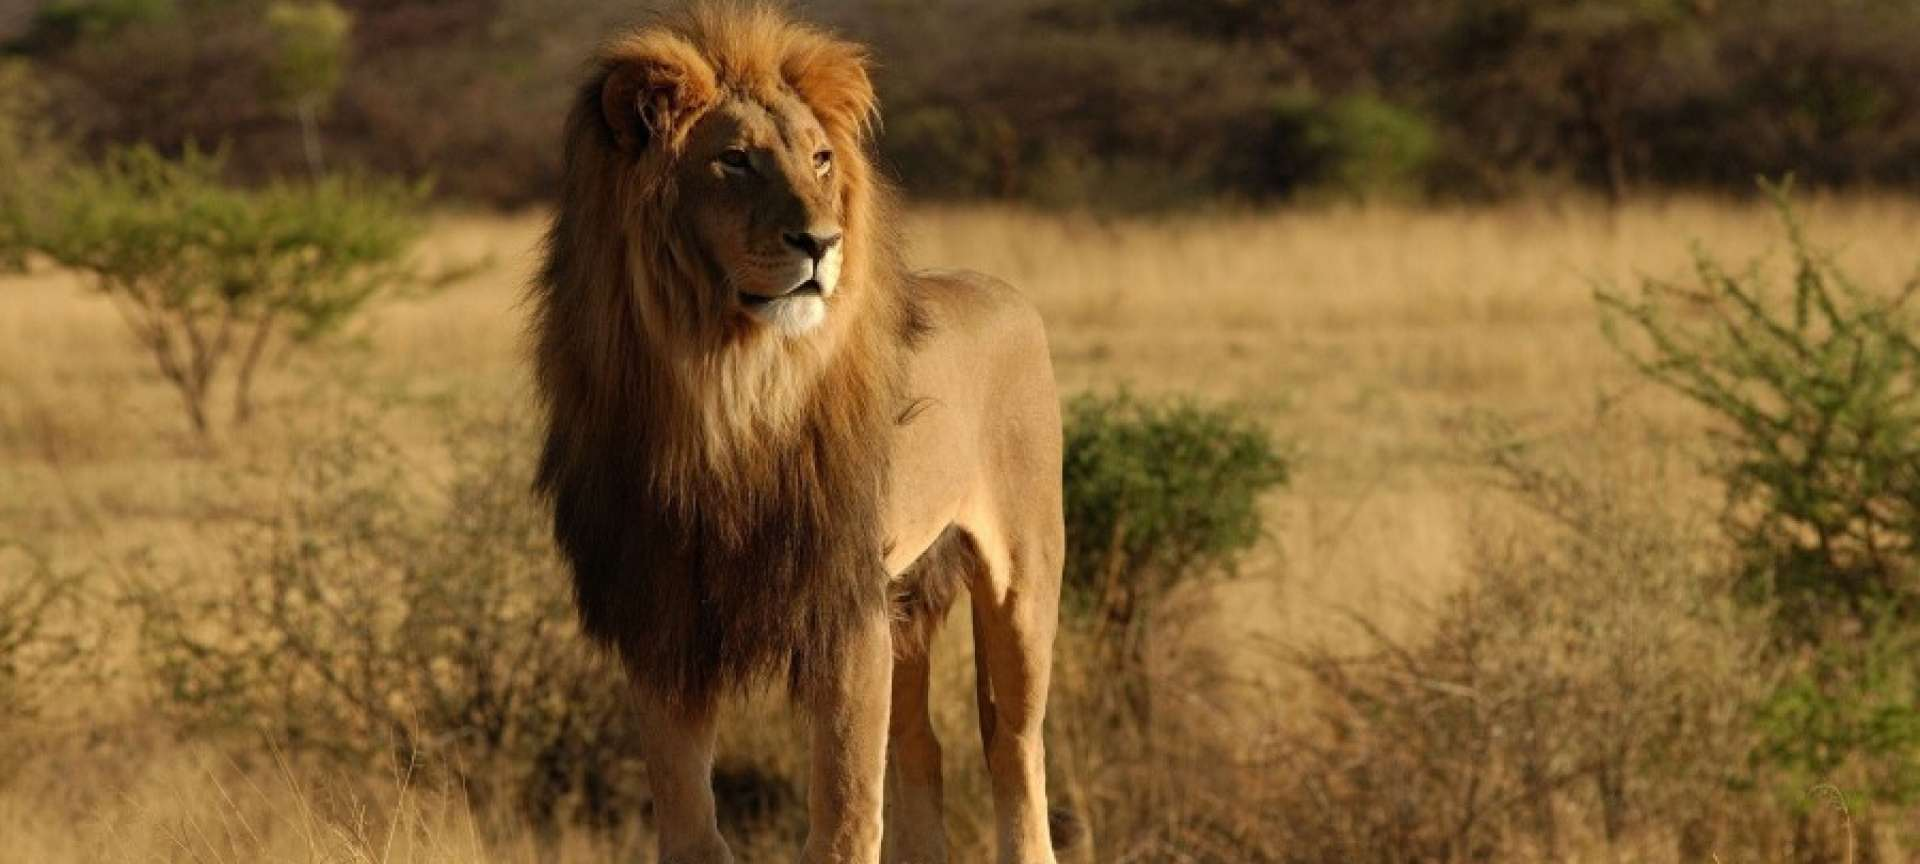 Lion safaris in South Africa - Africa Wildlife Safaris